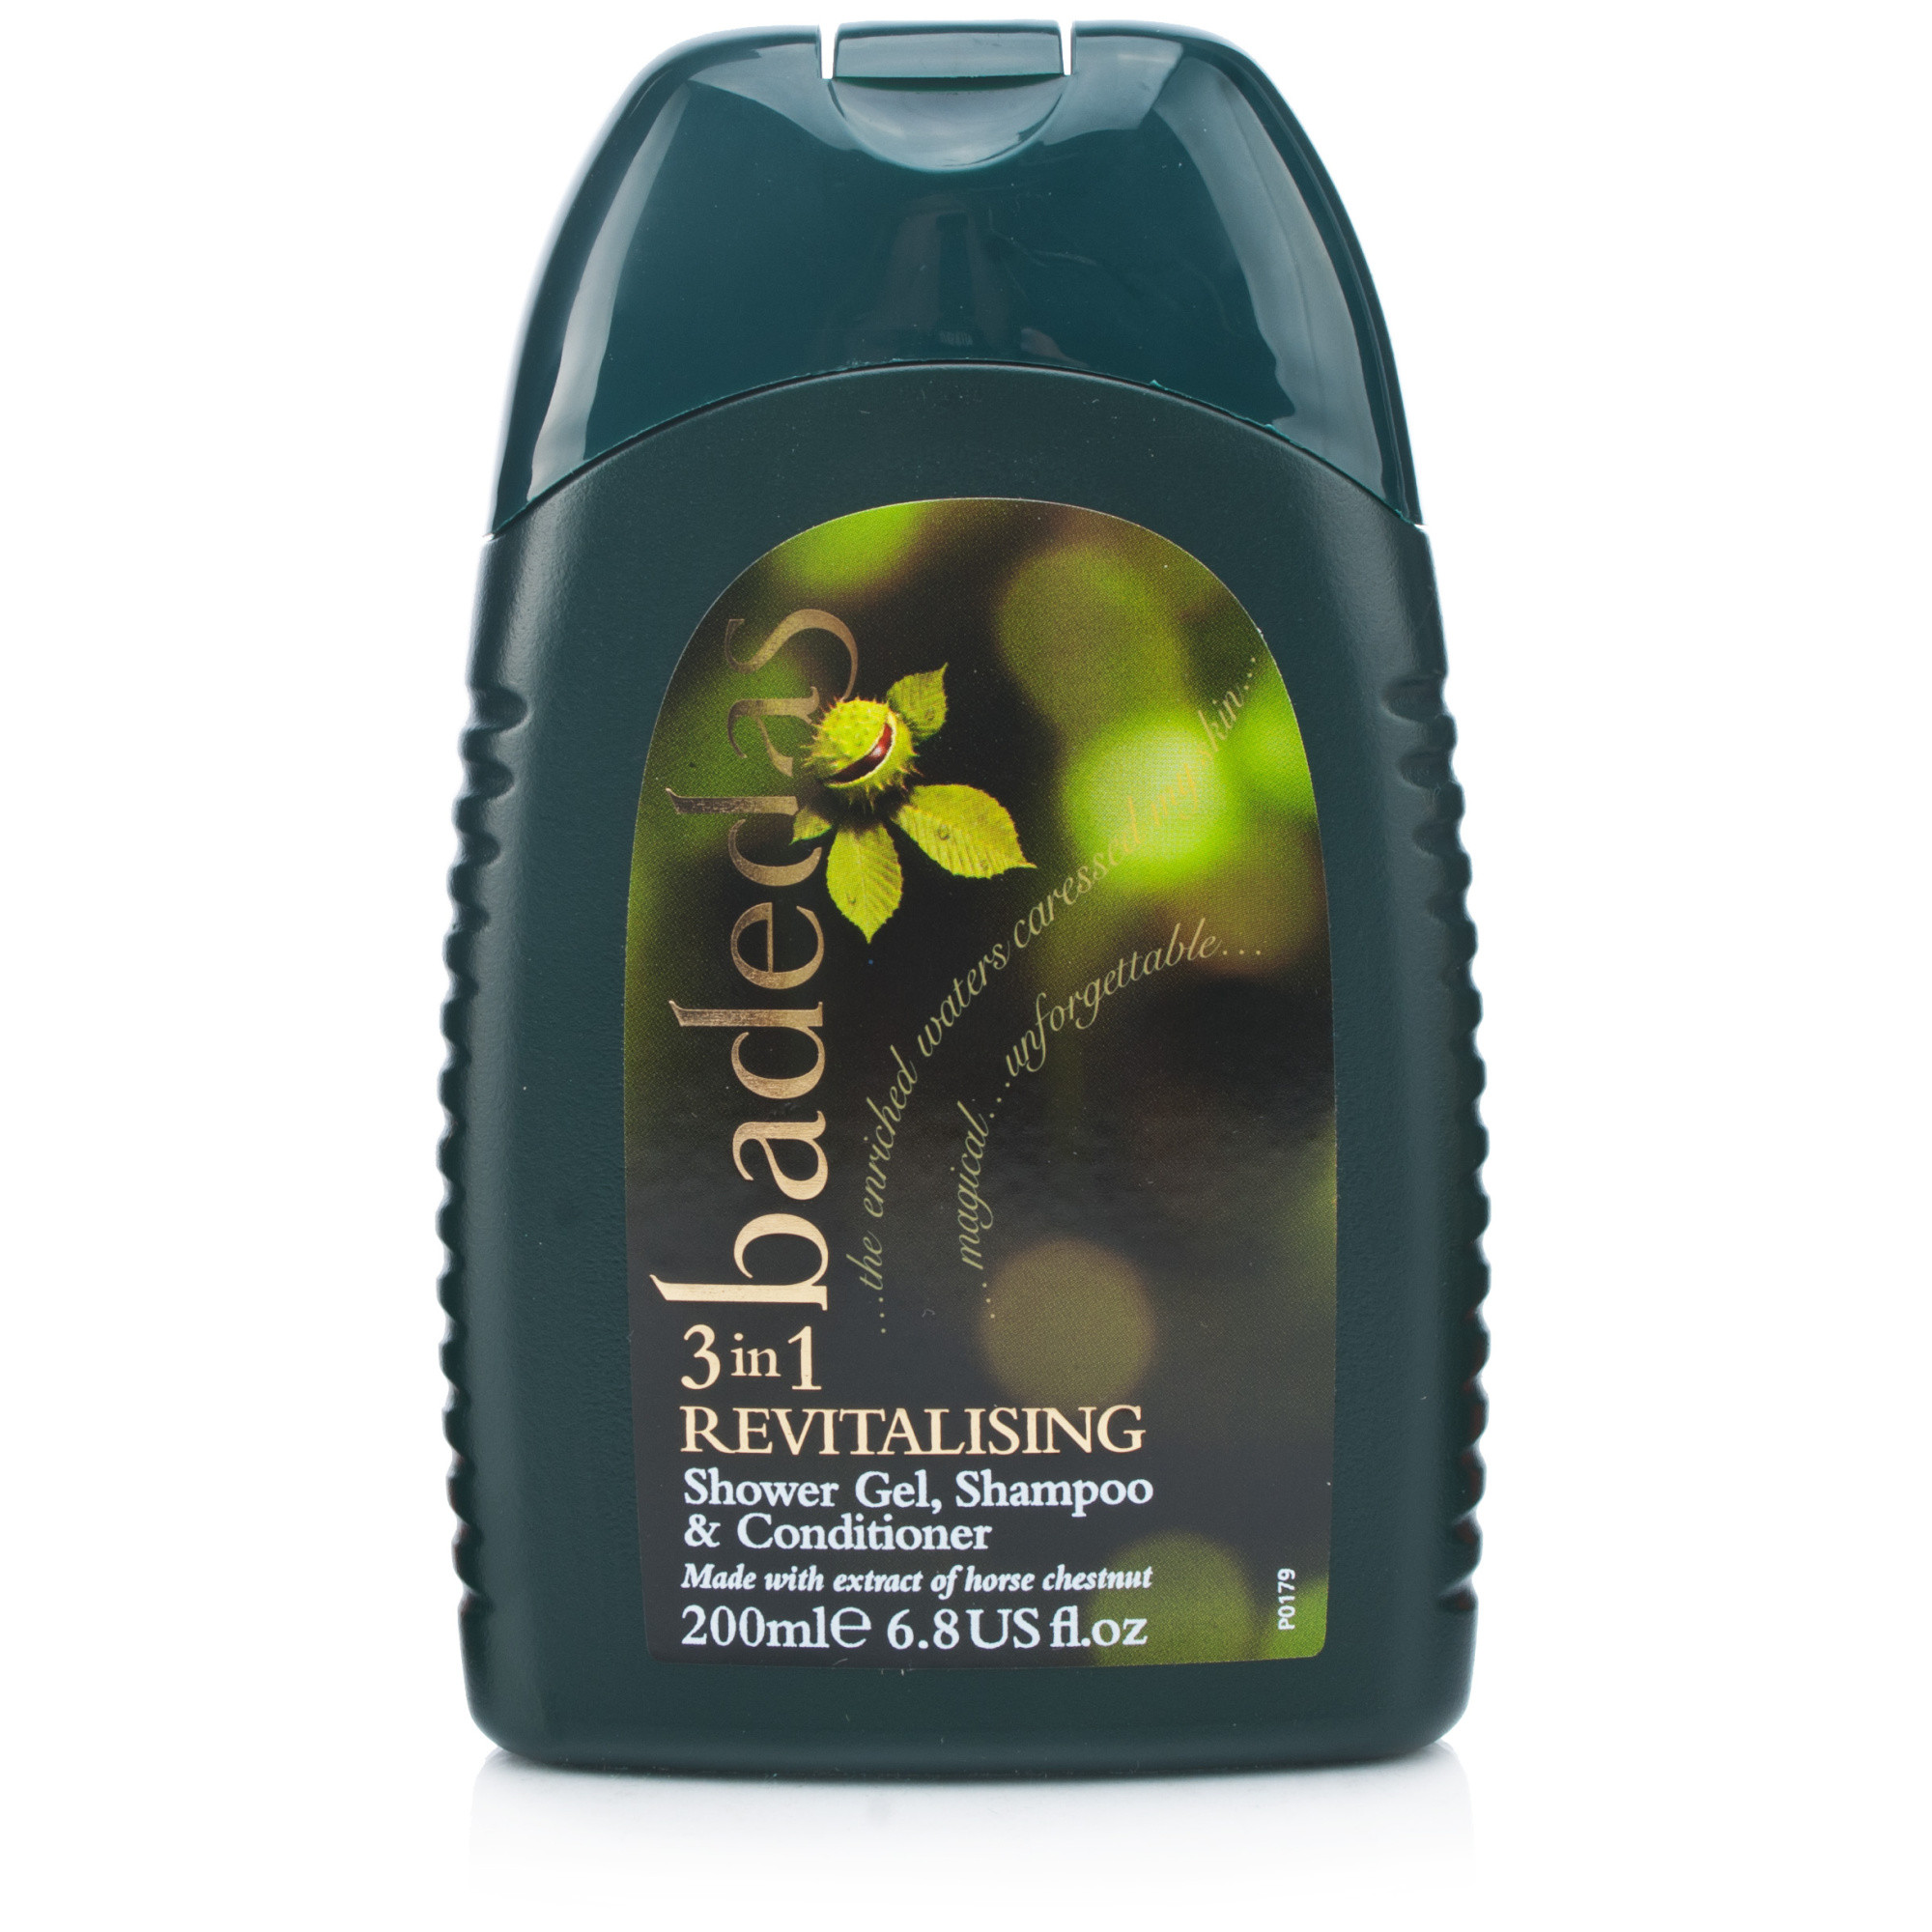 Badedas 3 in 1 Revitalising Shower Gel